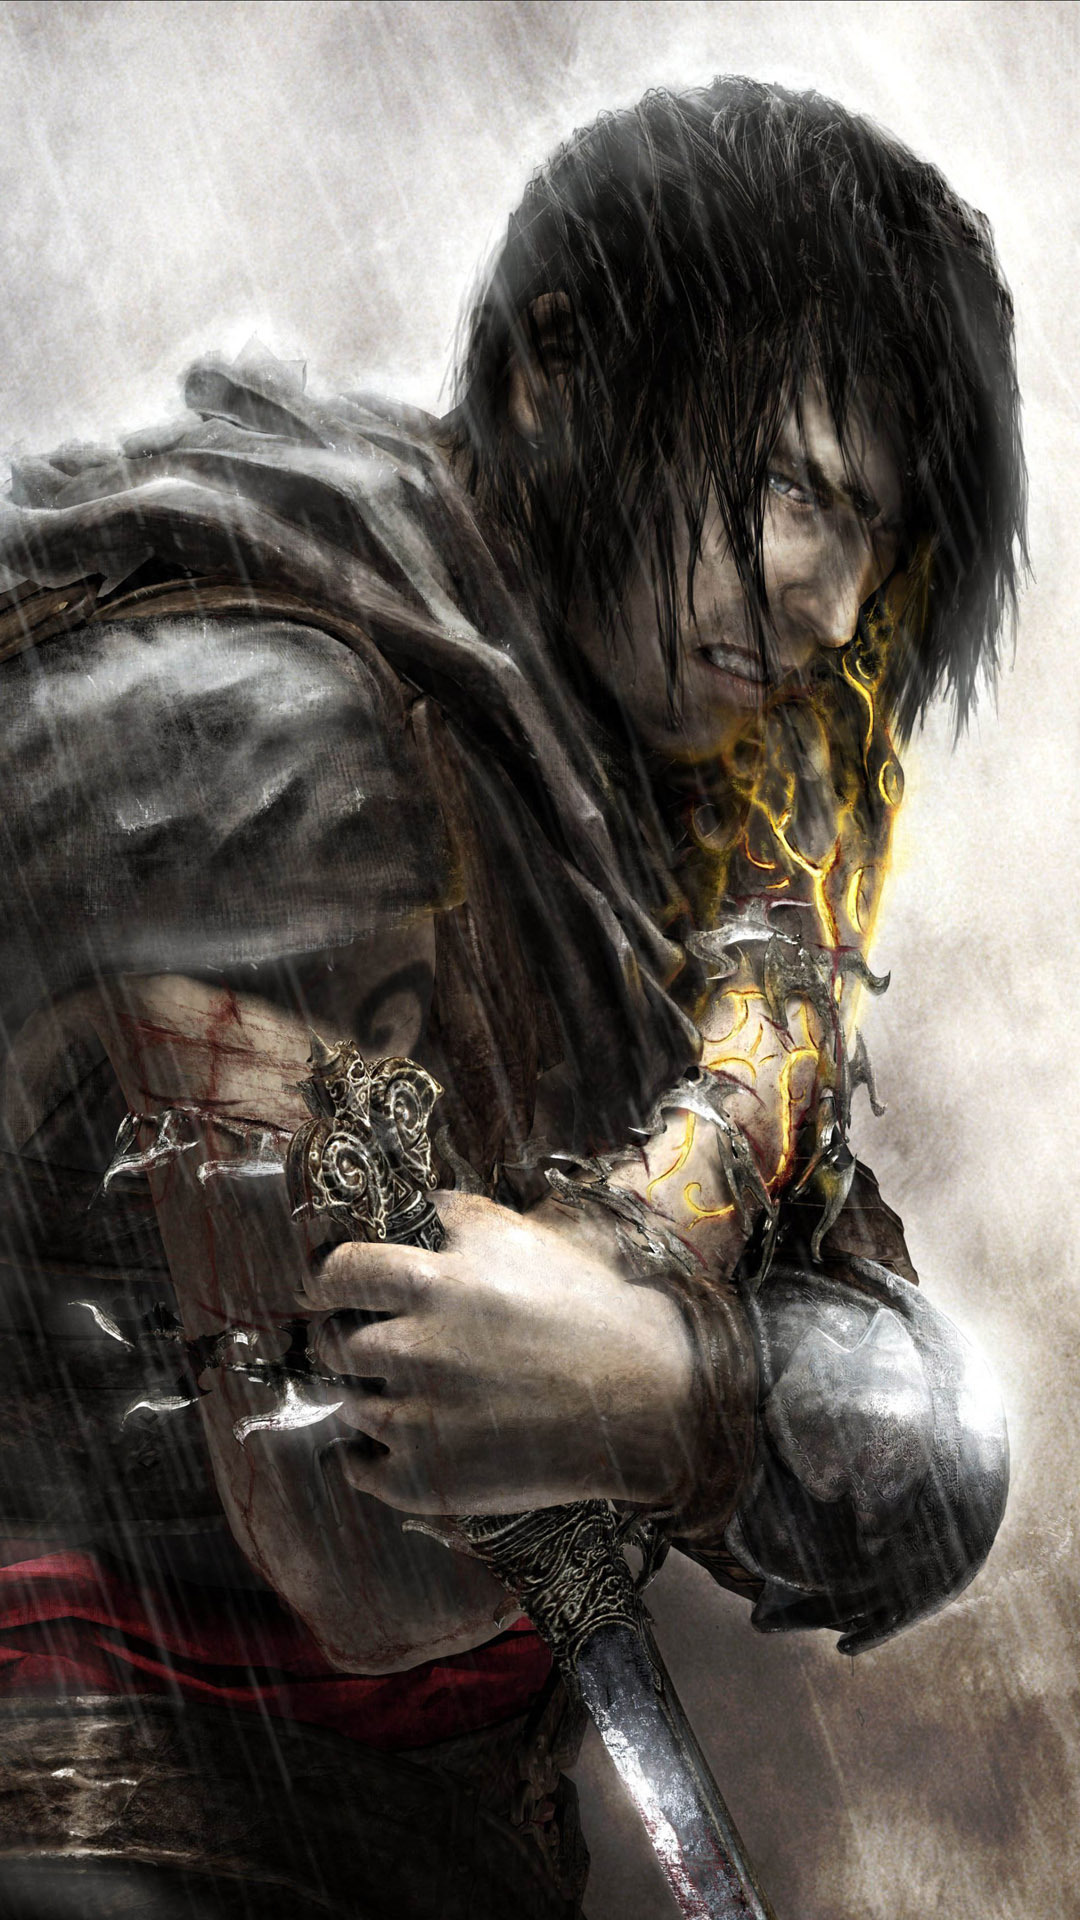 Prince Of Persia Mobile Wallpaper